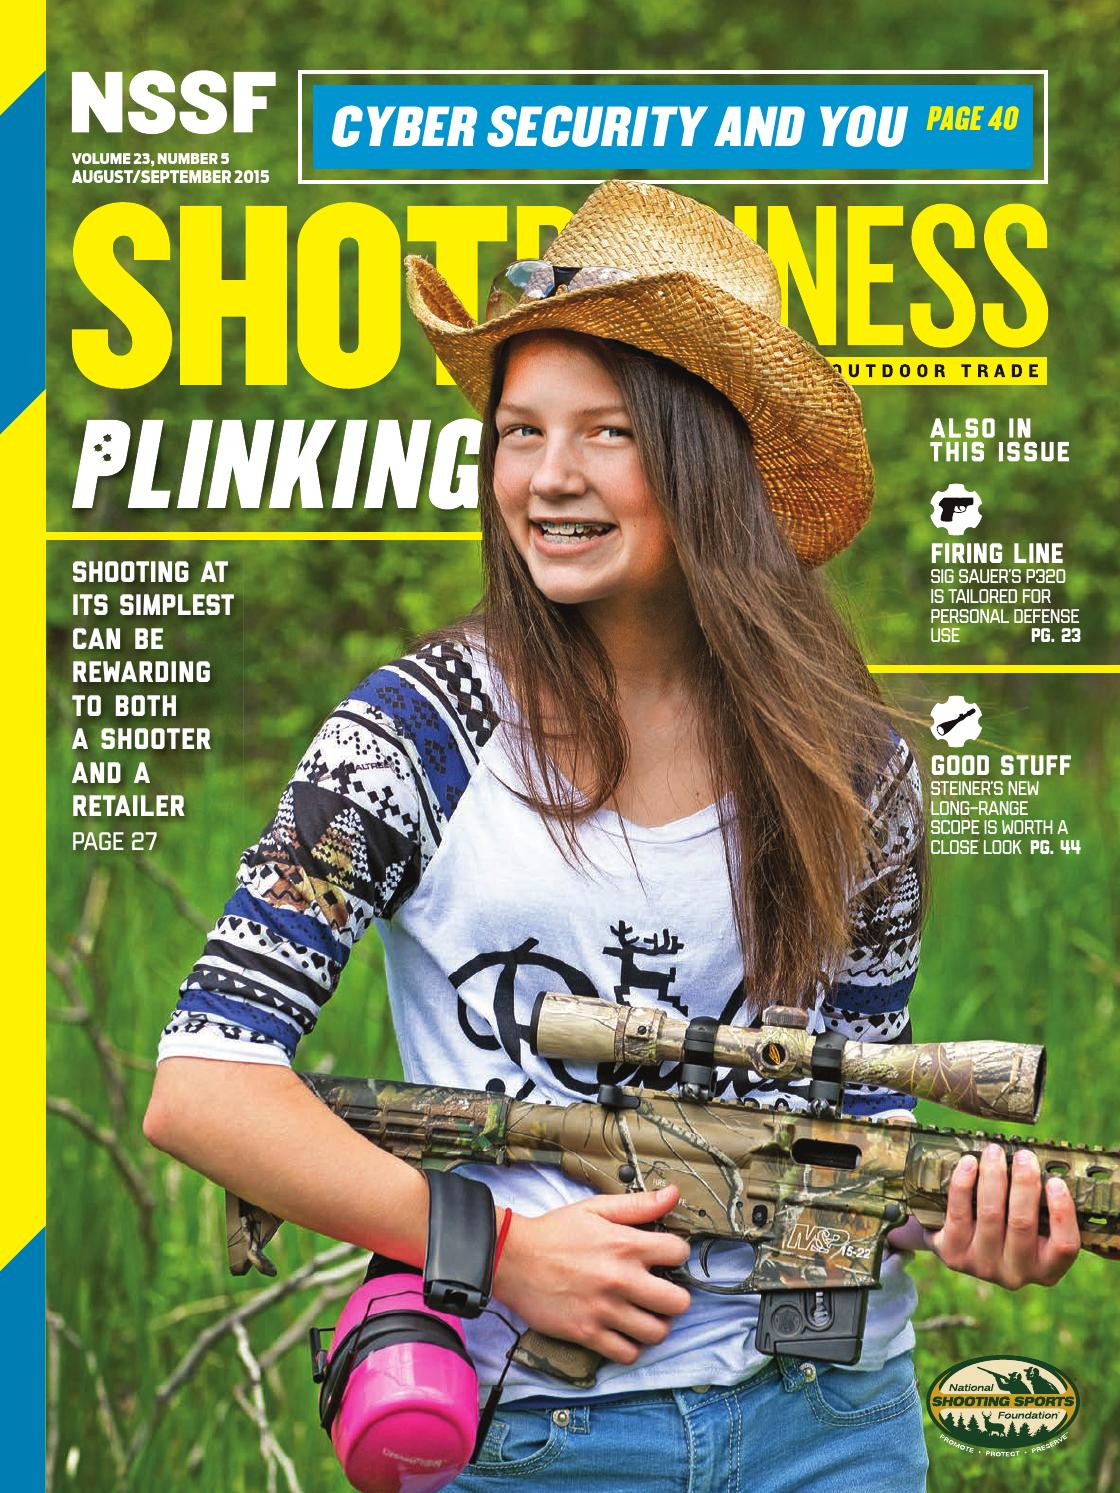 SHOT Business -- August/September 2015 by SHOT Business - issuu